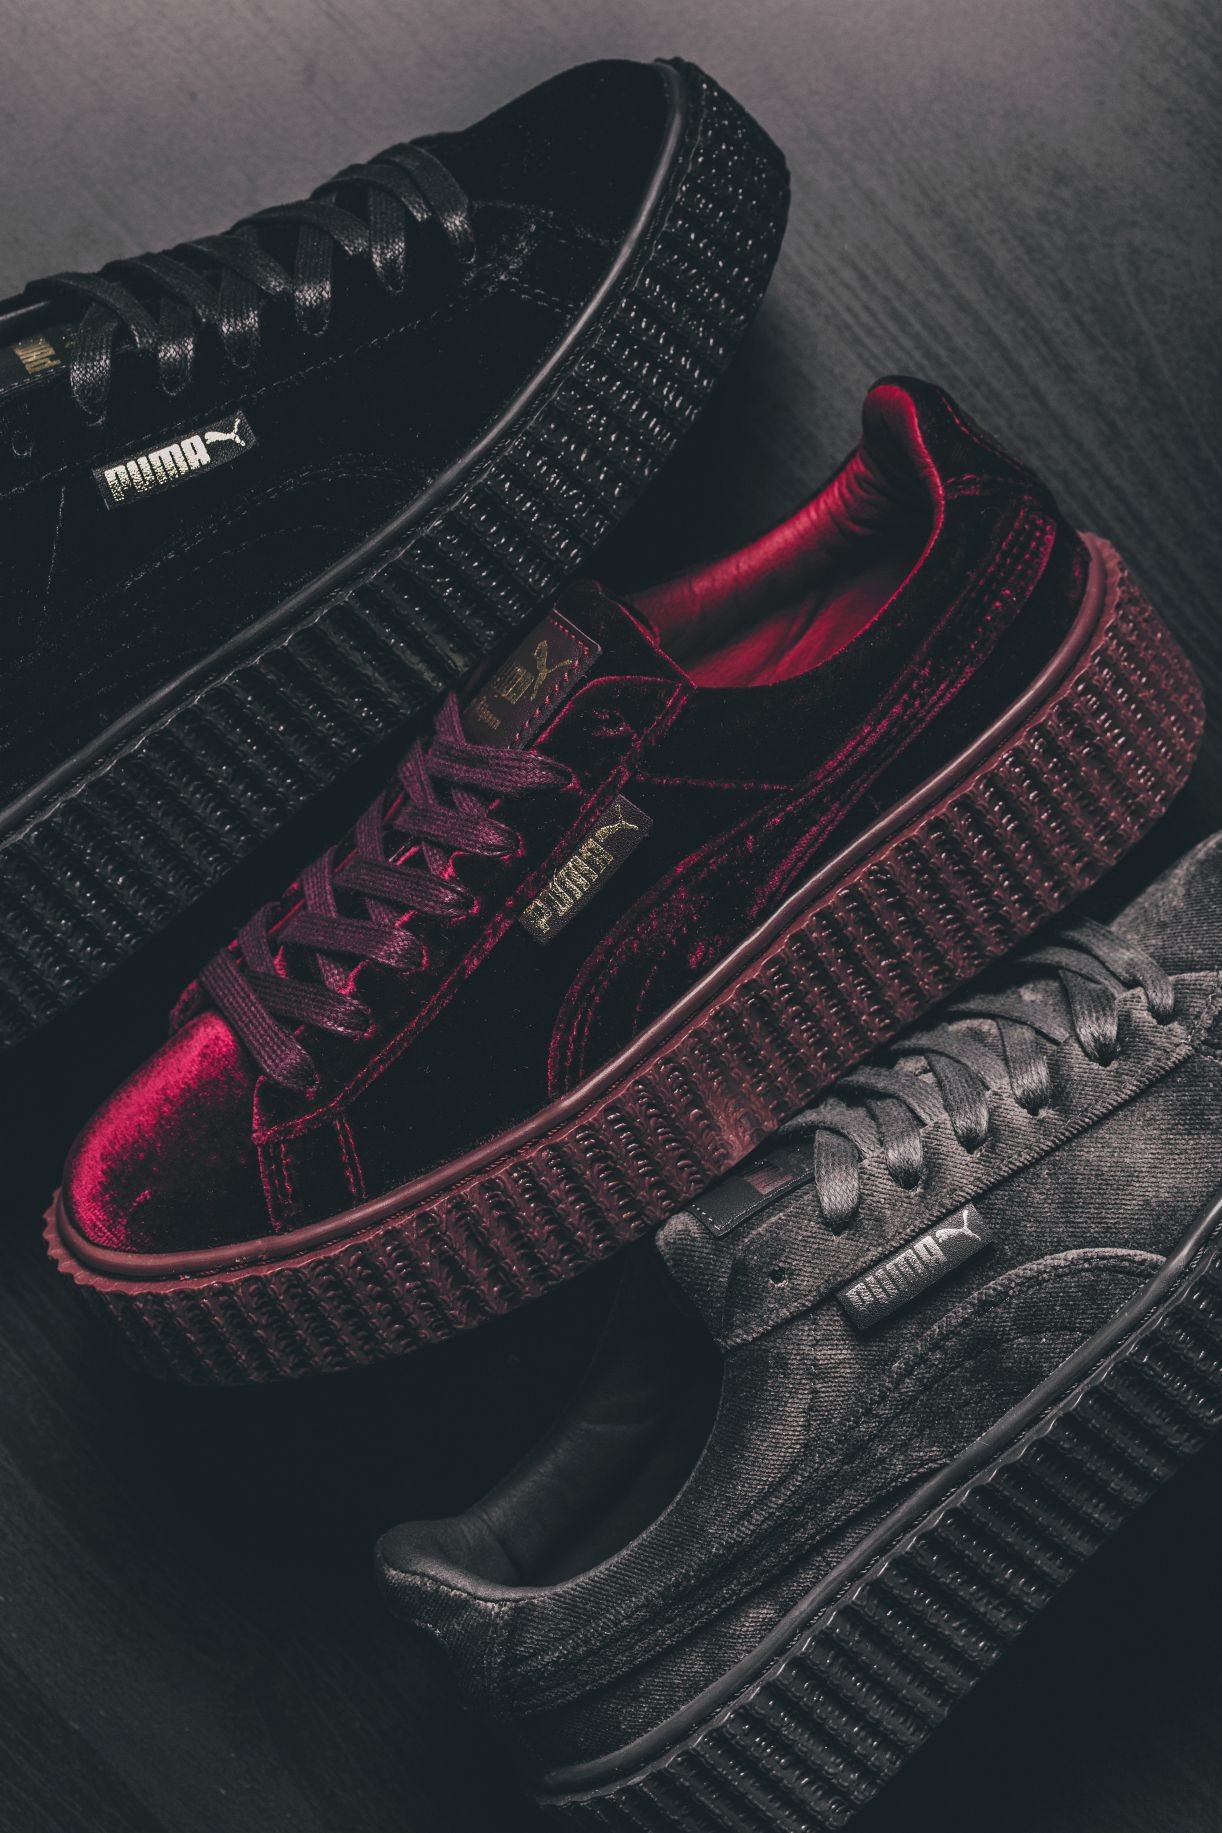 Puma x Rihanna FENTY Velvet Creepers  Puma  Rihanna  Fenty  Creepers   Fashion  Streetwear  Style  Urban  Lookbook  Photography  Footwear  Sneakers   Kicks   ... 995135512